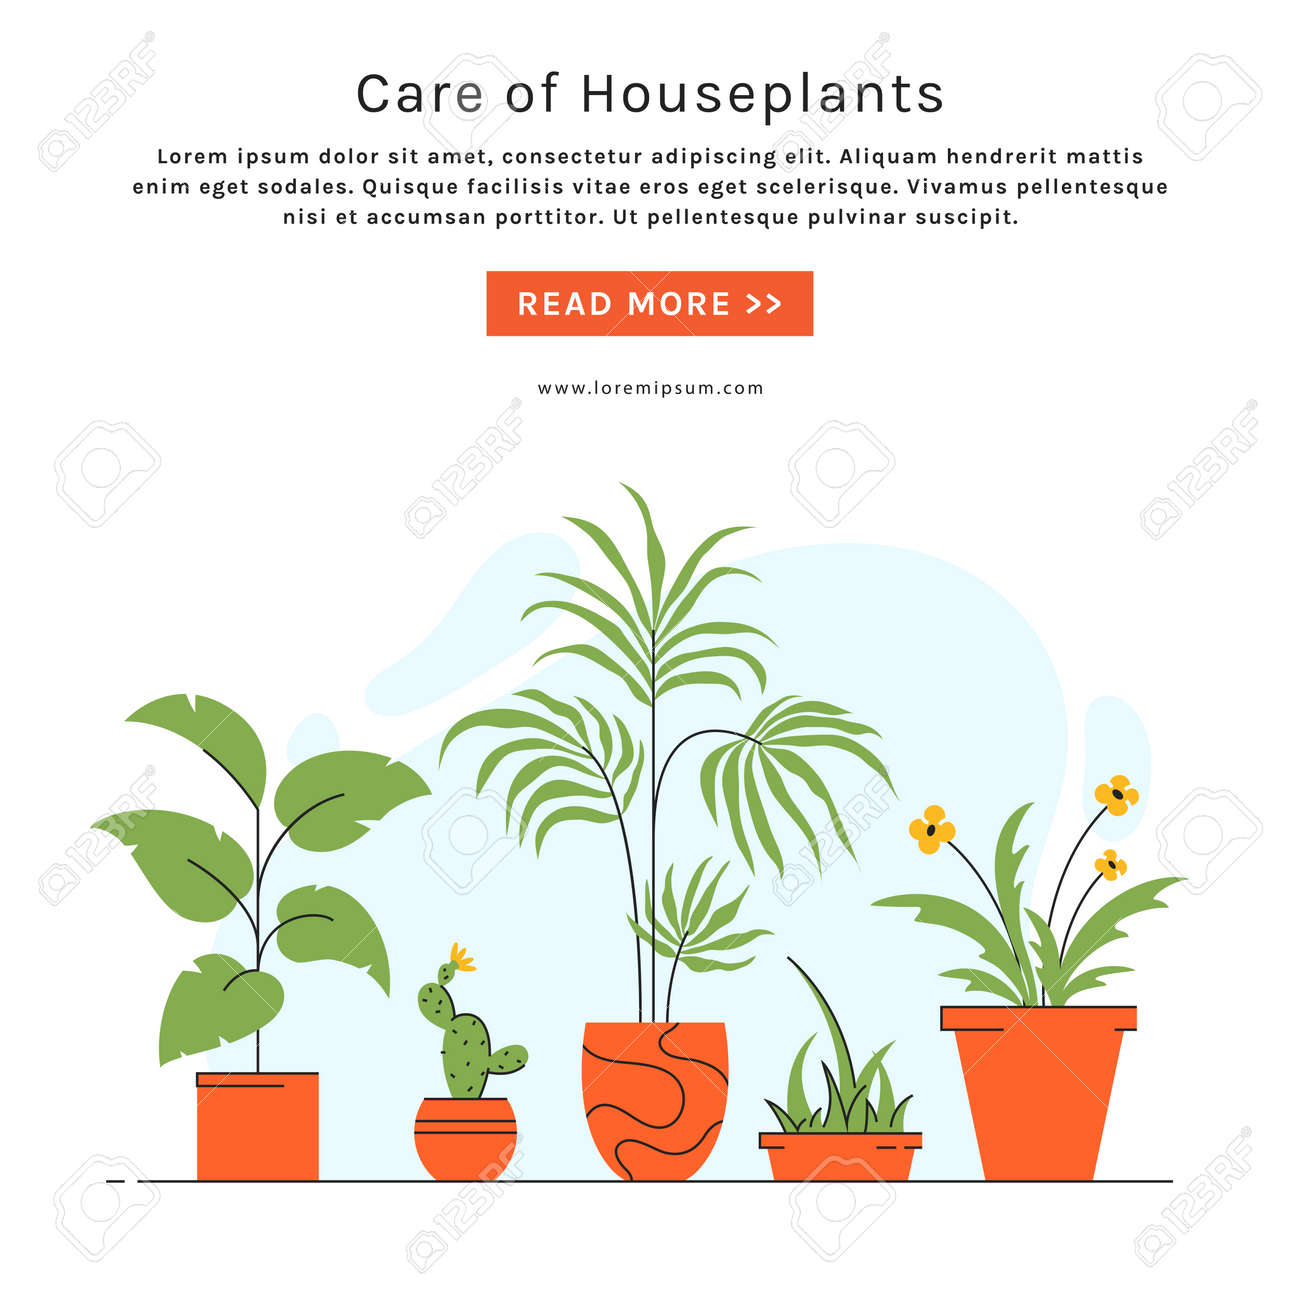 Houseplant care banner with place for text. Indoor plants in pots. Vector illustration in trendy style. - 158641222